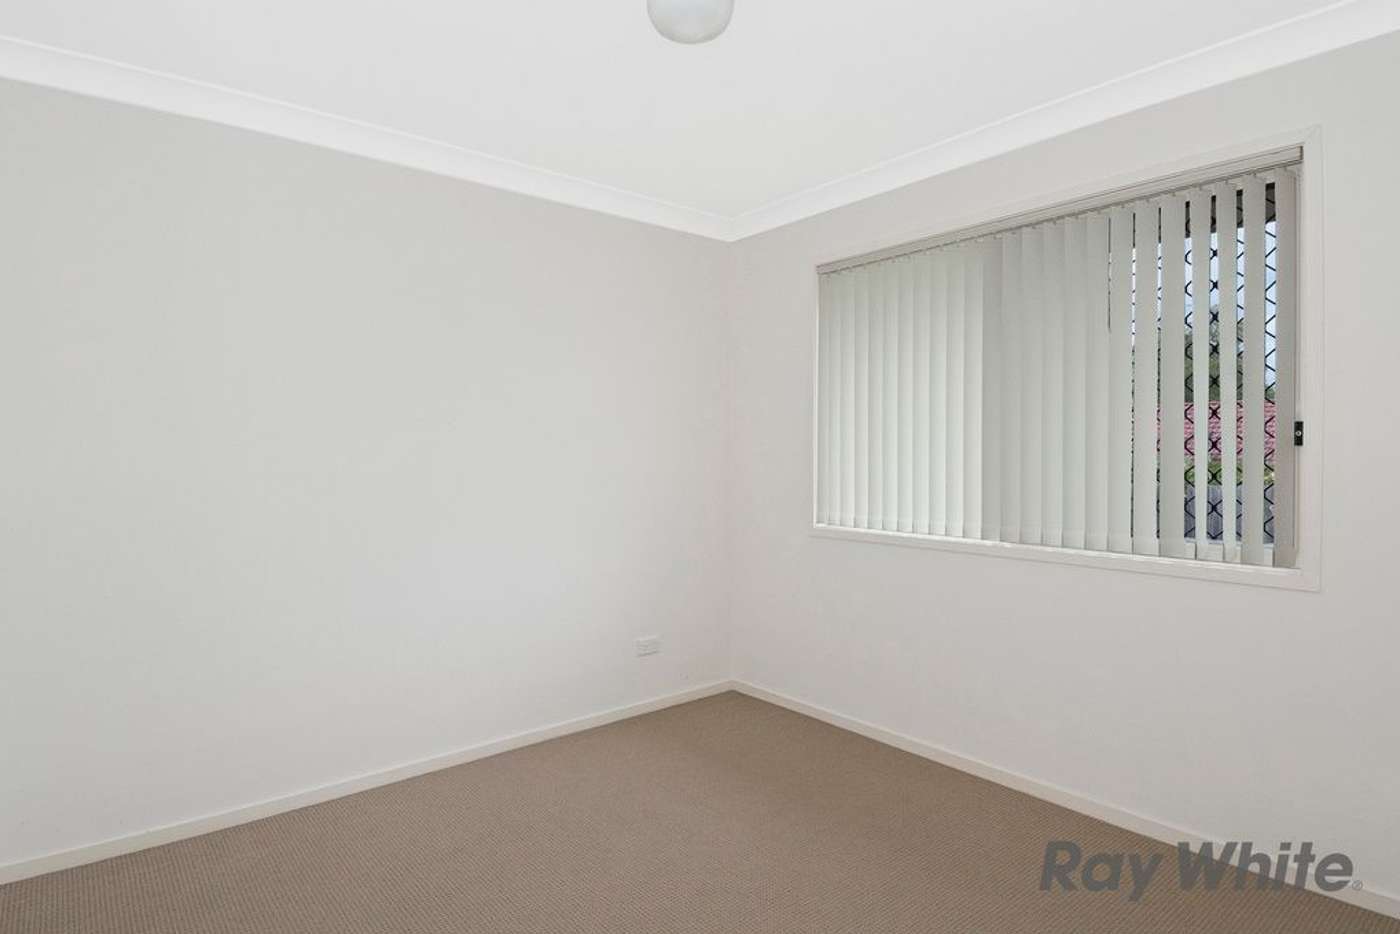 Sixth view of Homely house listing, 18 Crescendo Place, Crestmead QLD 4132